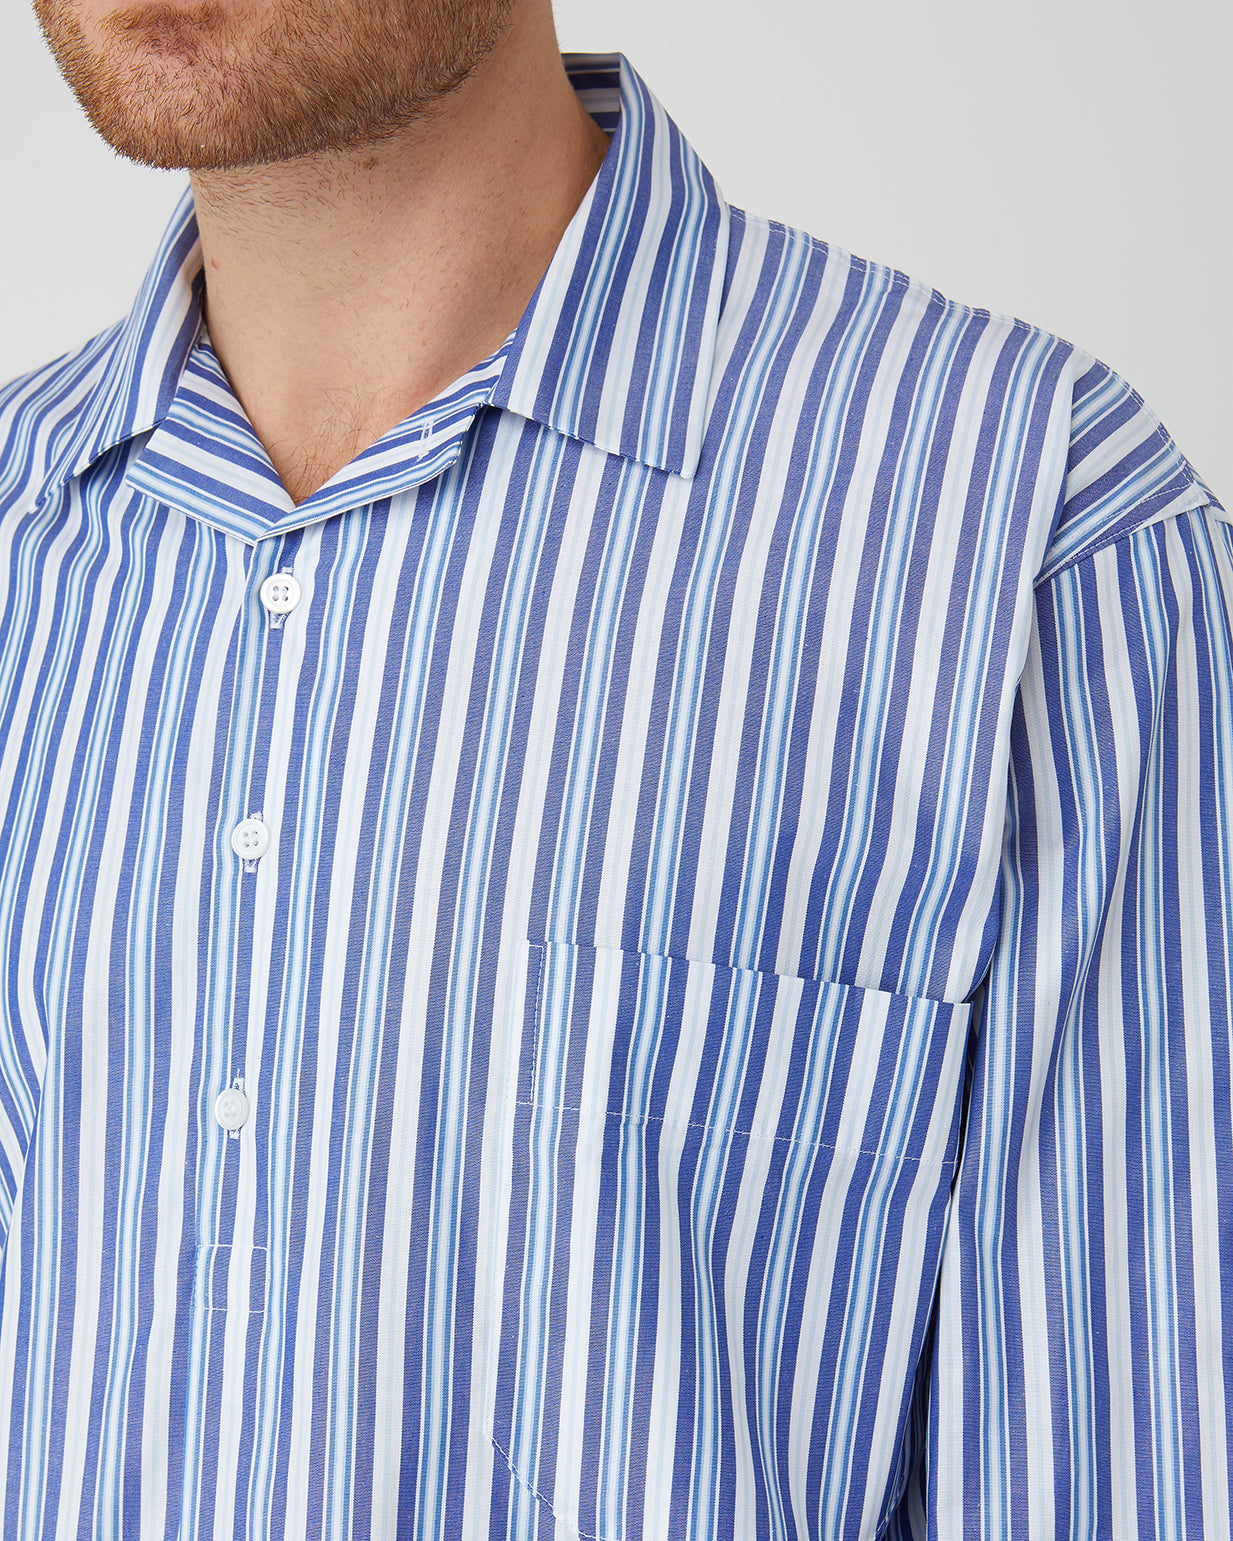 Men's Classic Cotton Nightshirt - A269